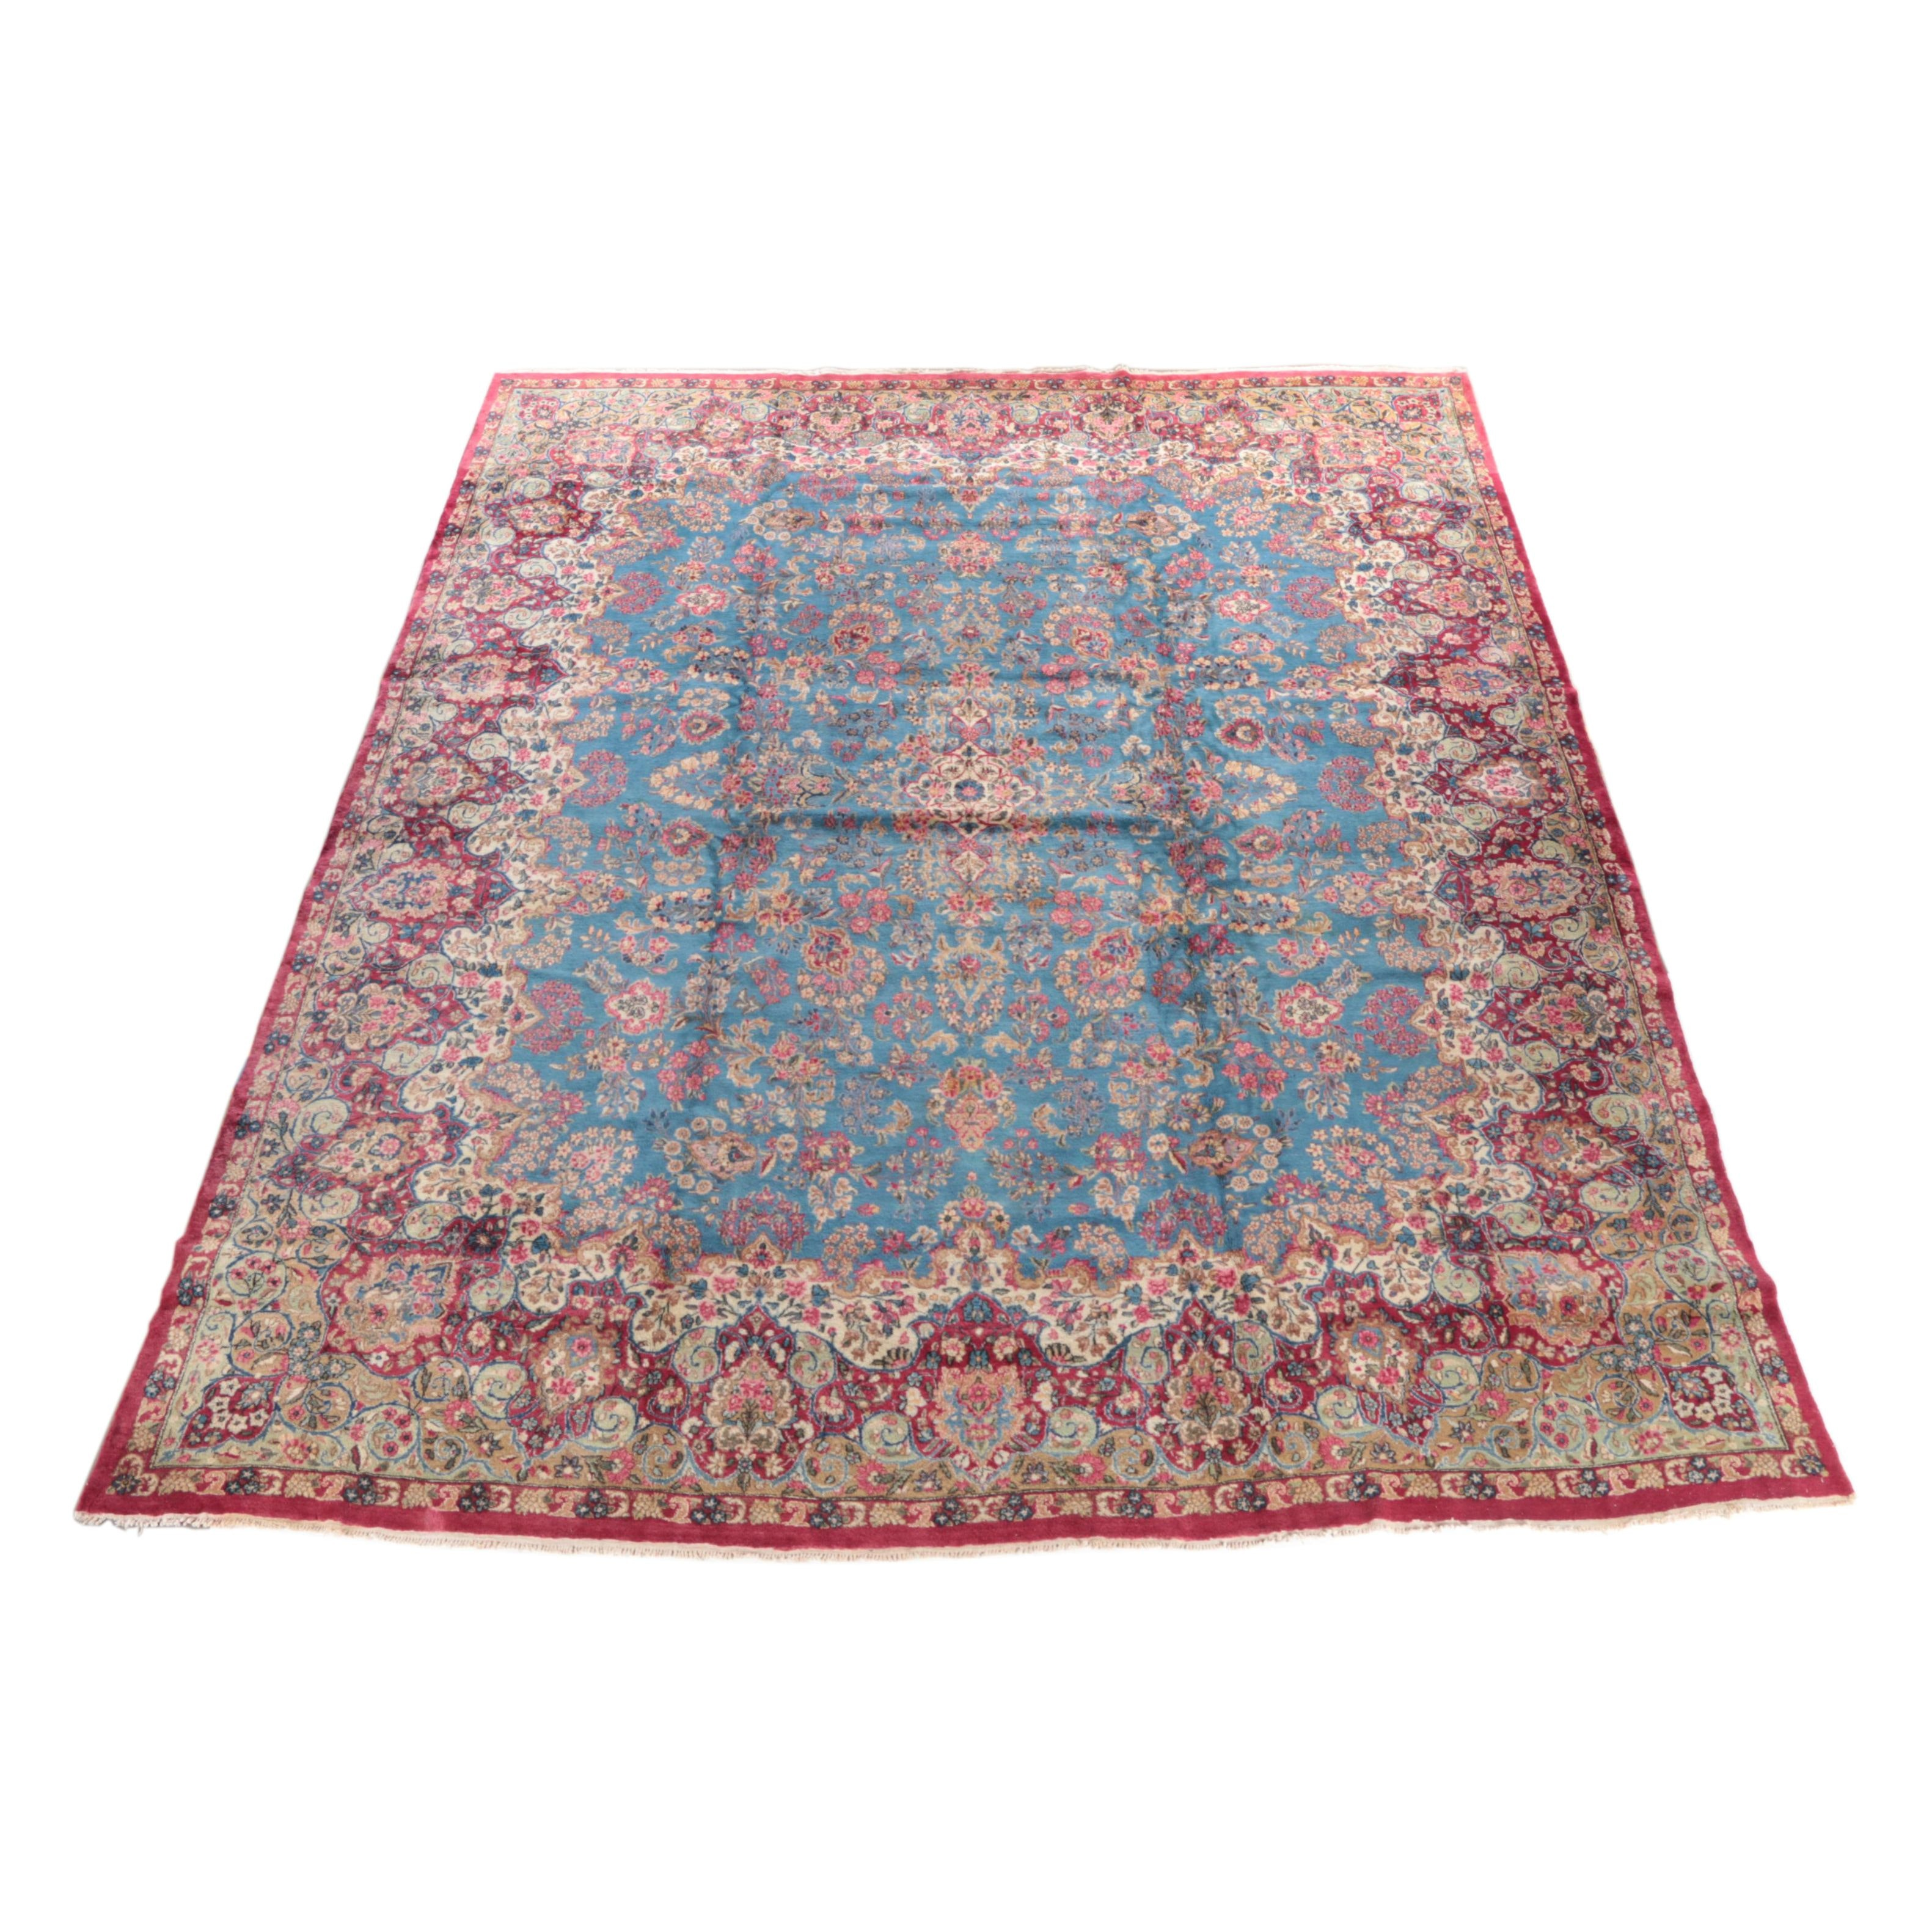 A Hand-Knotted Persian Kerman Wool Area Rug